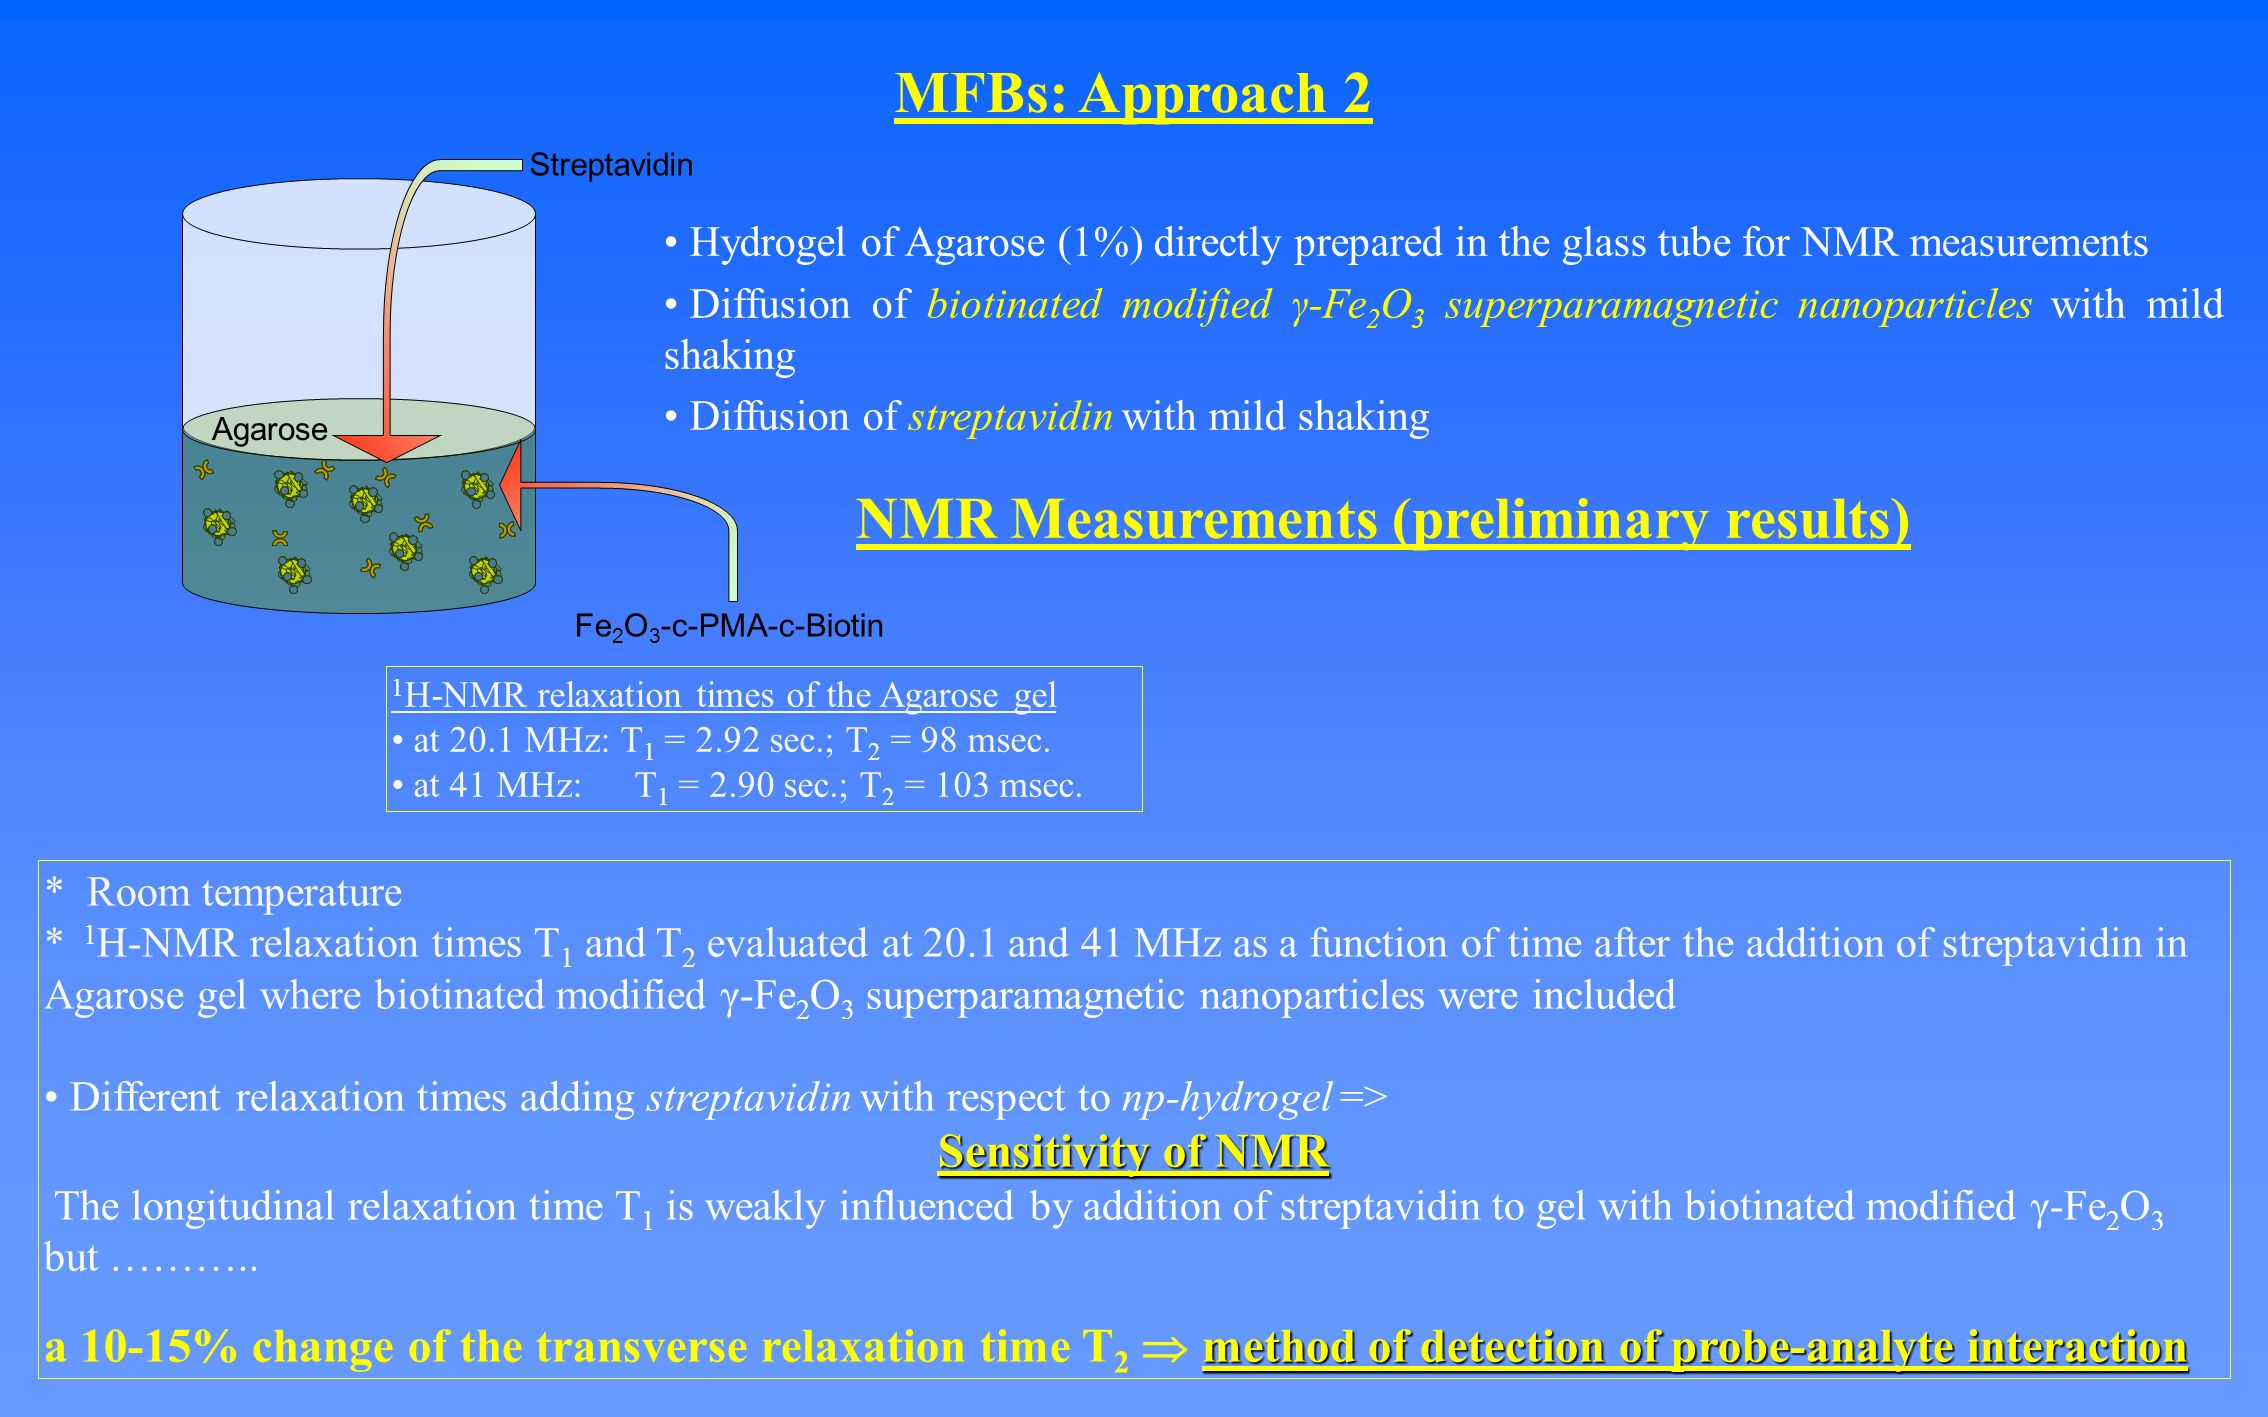 NMR Measurements (preliminary results) MFBs: Approach 2 Hydrogel of Agarose (1%) directly prepared in the glass tube for NMR measurements Diffusion of biotinated modified γ-Fe 2 O 3 superparamagnetic nanoparticles with mild shaking Diffusion of streptavidin with mild shaking * Room temperature * 1 H-NMR relaxation times T 1 and T 2 evaluated at 20.1 and 41 MHz as a function of time after the addition of streptavidin in Agarose gel where biotinated modified γ-Fe 2 O 3 superparamagnetic nanoparticles were included Different relaxation times adding streptavidin with respect to np-hydrogel => Sensitivity of NMR The longitudinal relaxation time T 1 is weakly influenced by addition of streptavidin to gel with biotinated modified γ-Fe 2 O 3 but ………..